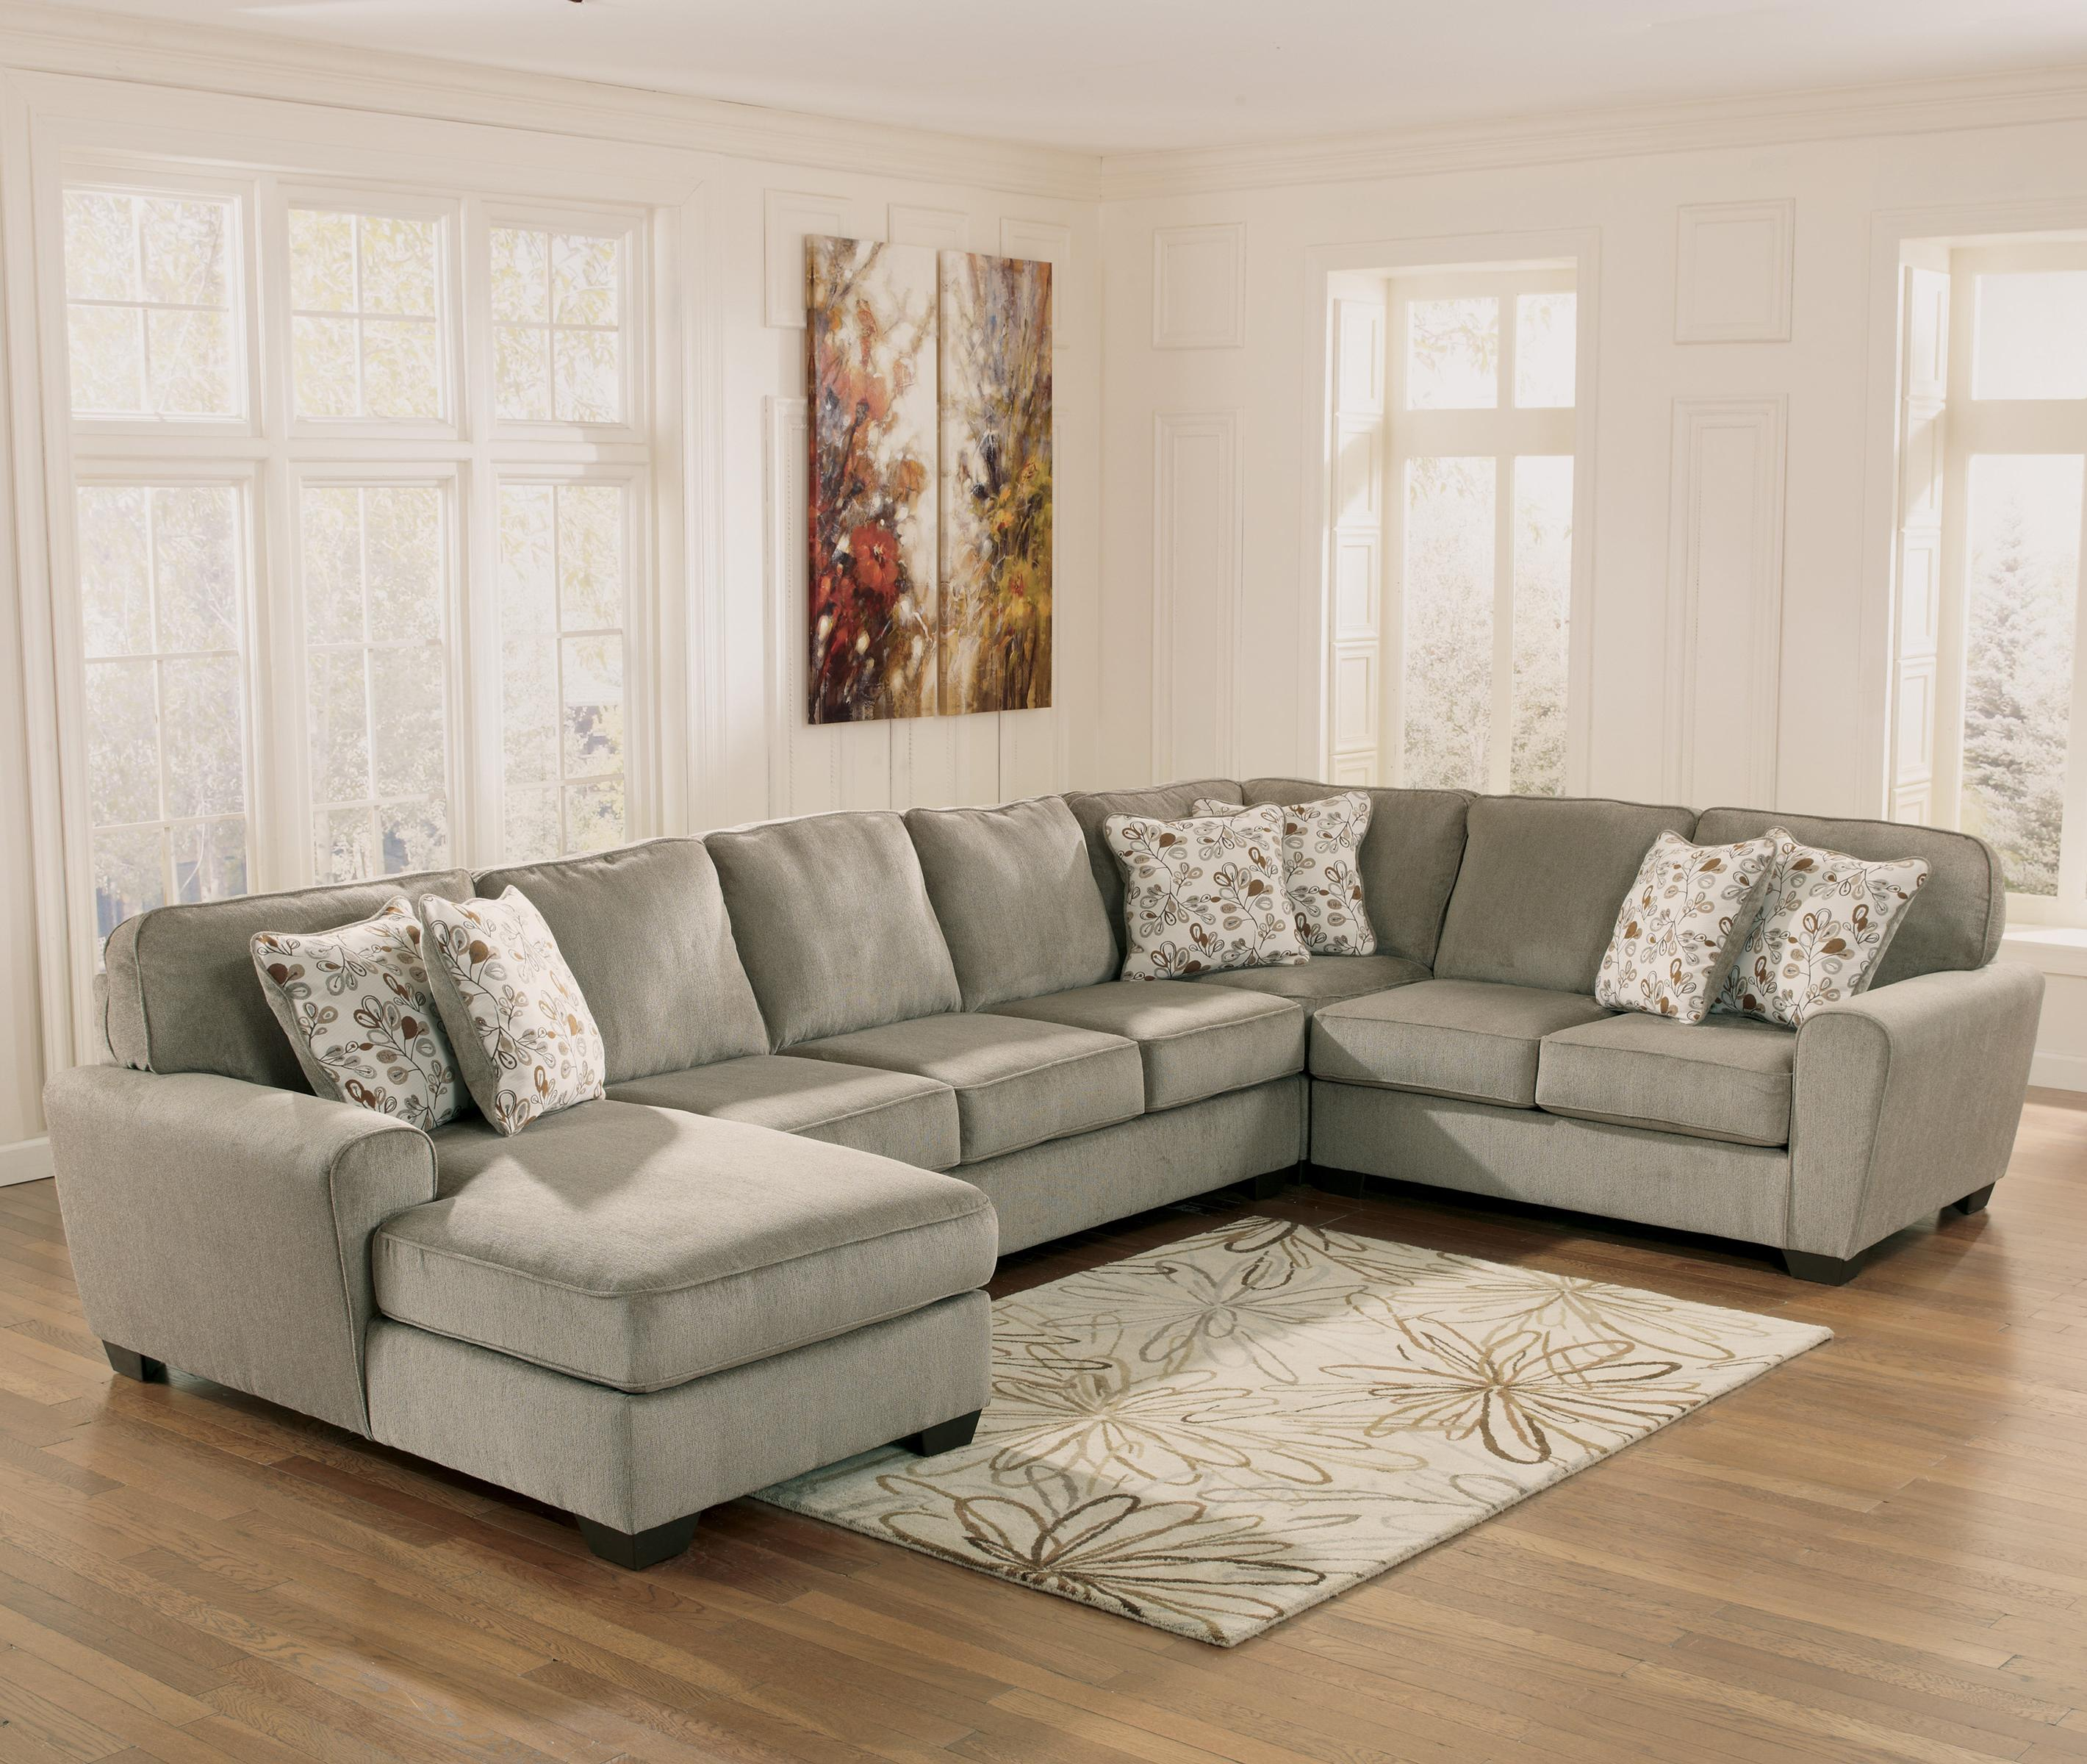 Patola Park - Patina 4-Piece Sectional with Left Chaise by Ashley Furniture at Lapeer Furniture & Mattress Center